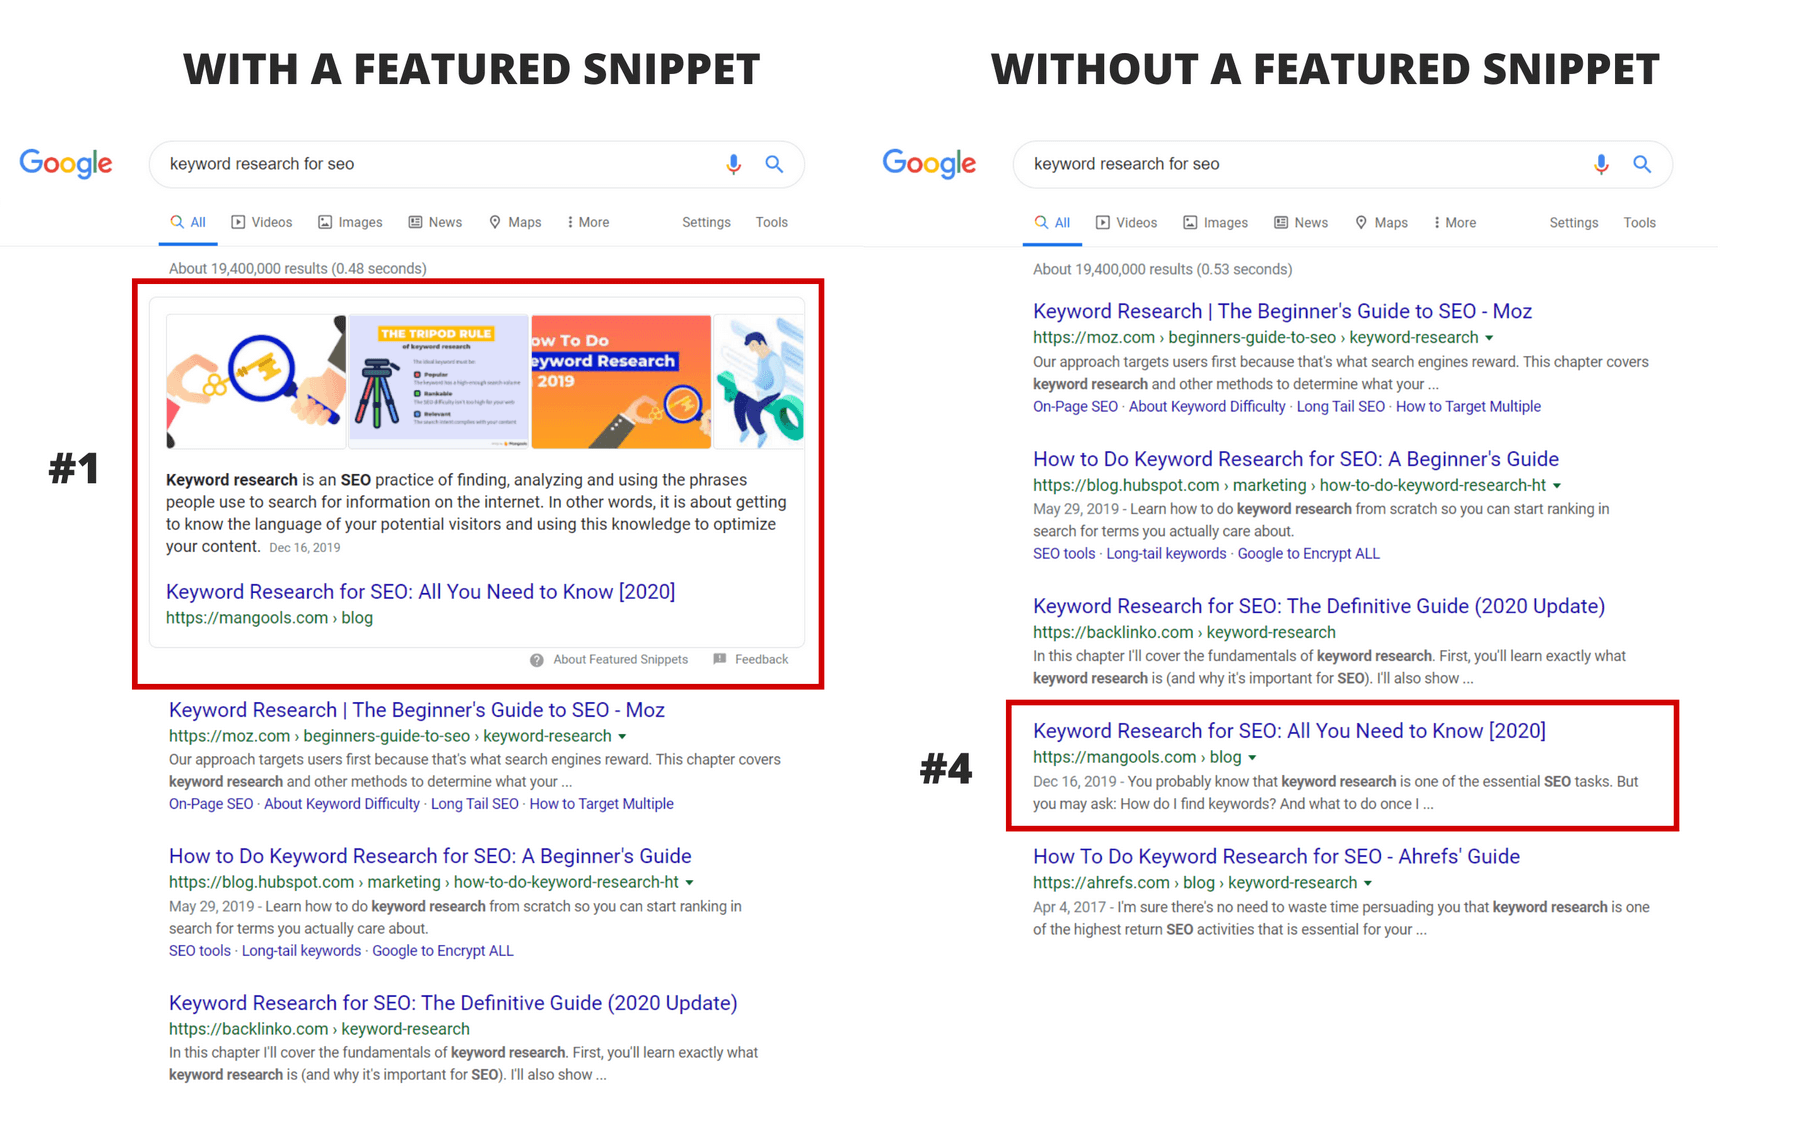 ranking with and without a featured snippet